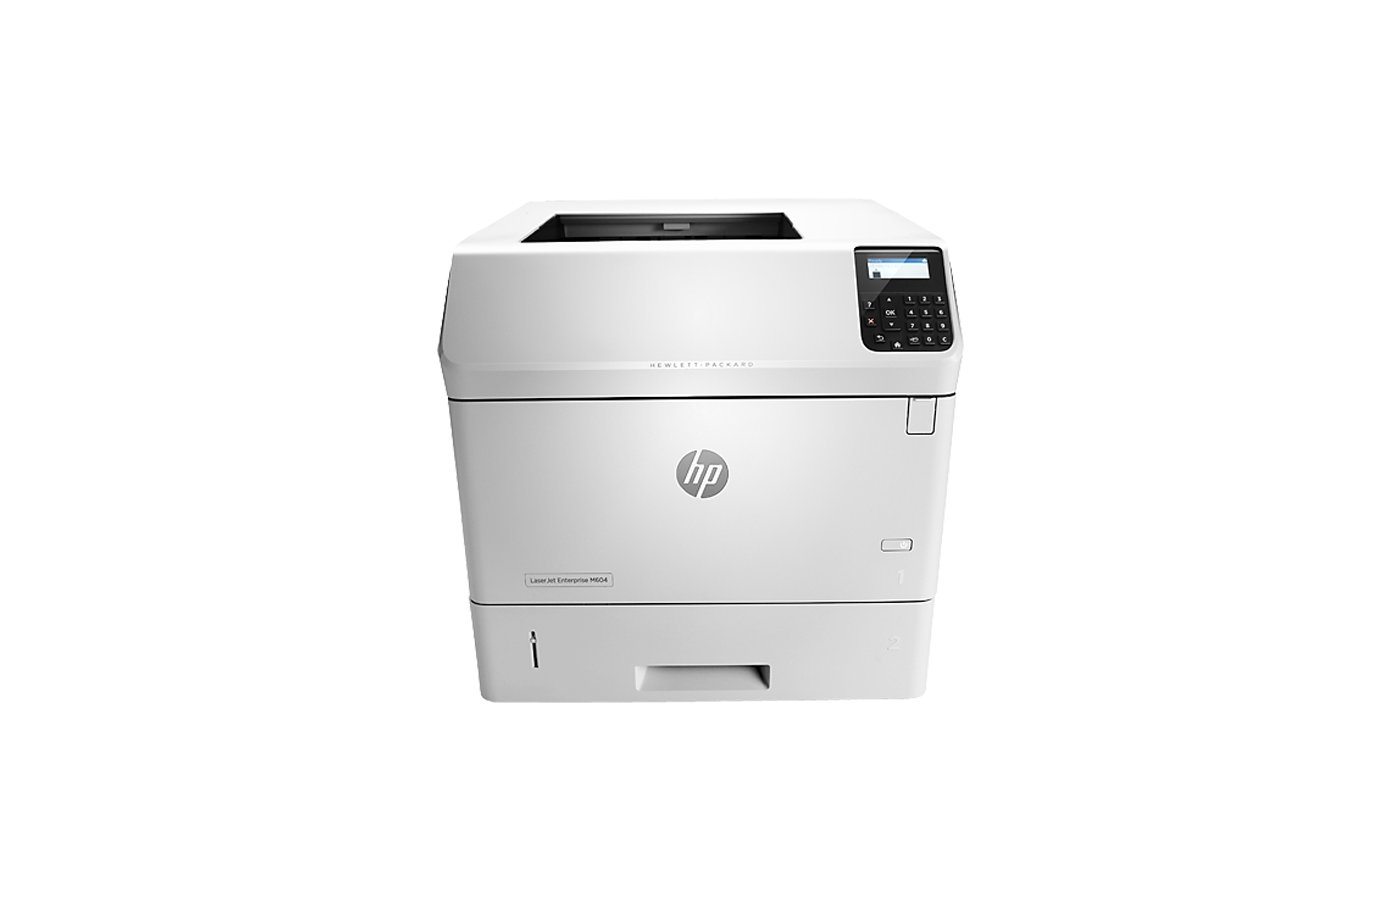 Принтер HP LaserJet Enterprise 600 M604dn /E6B68A/